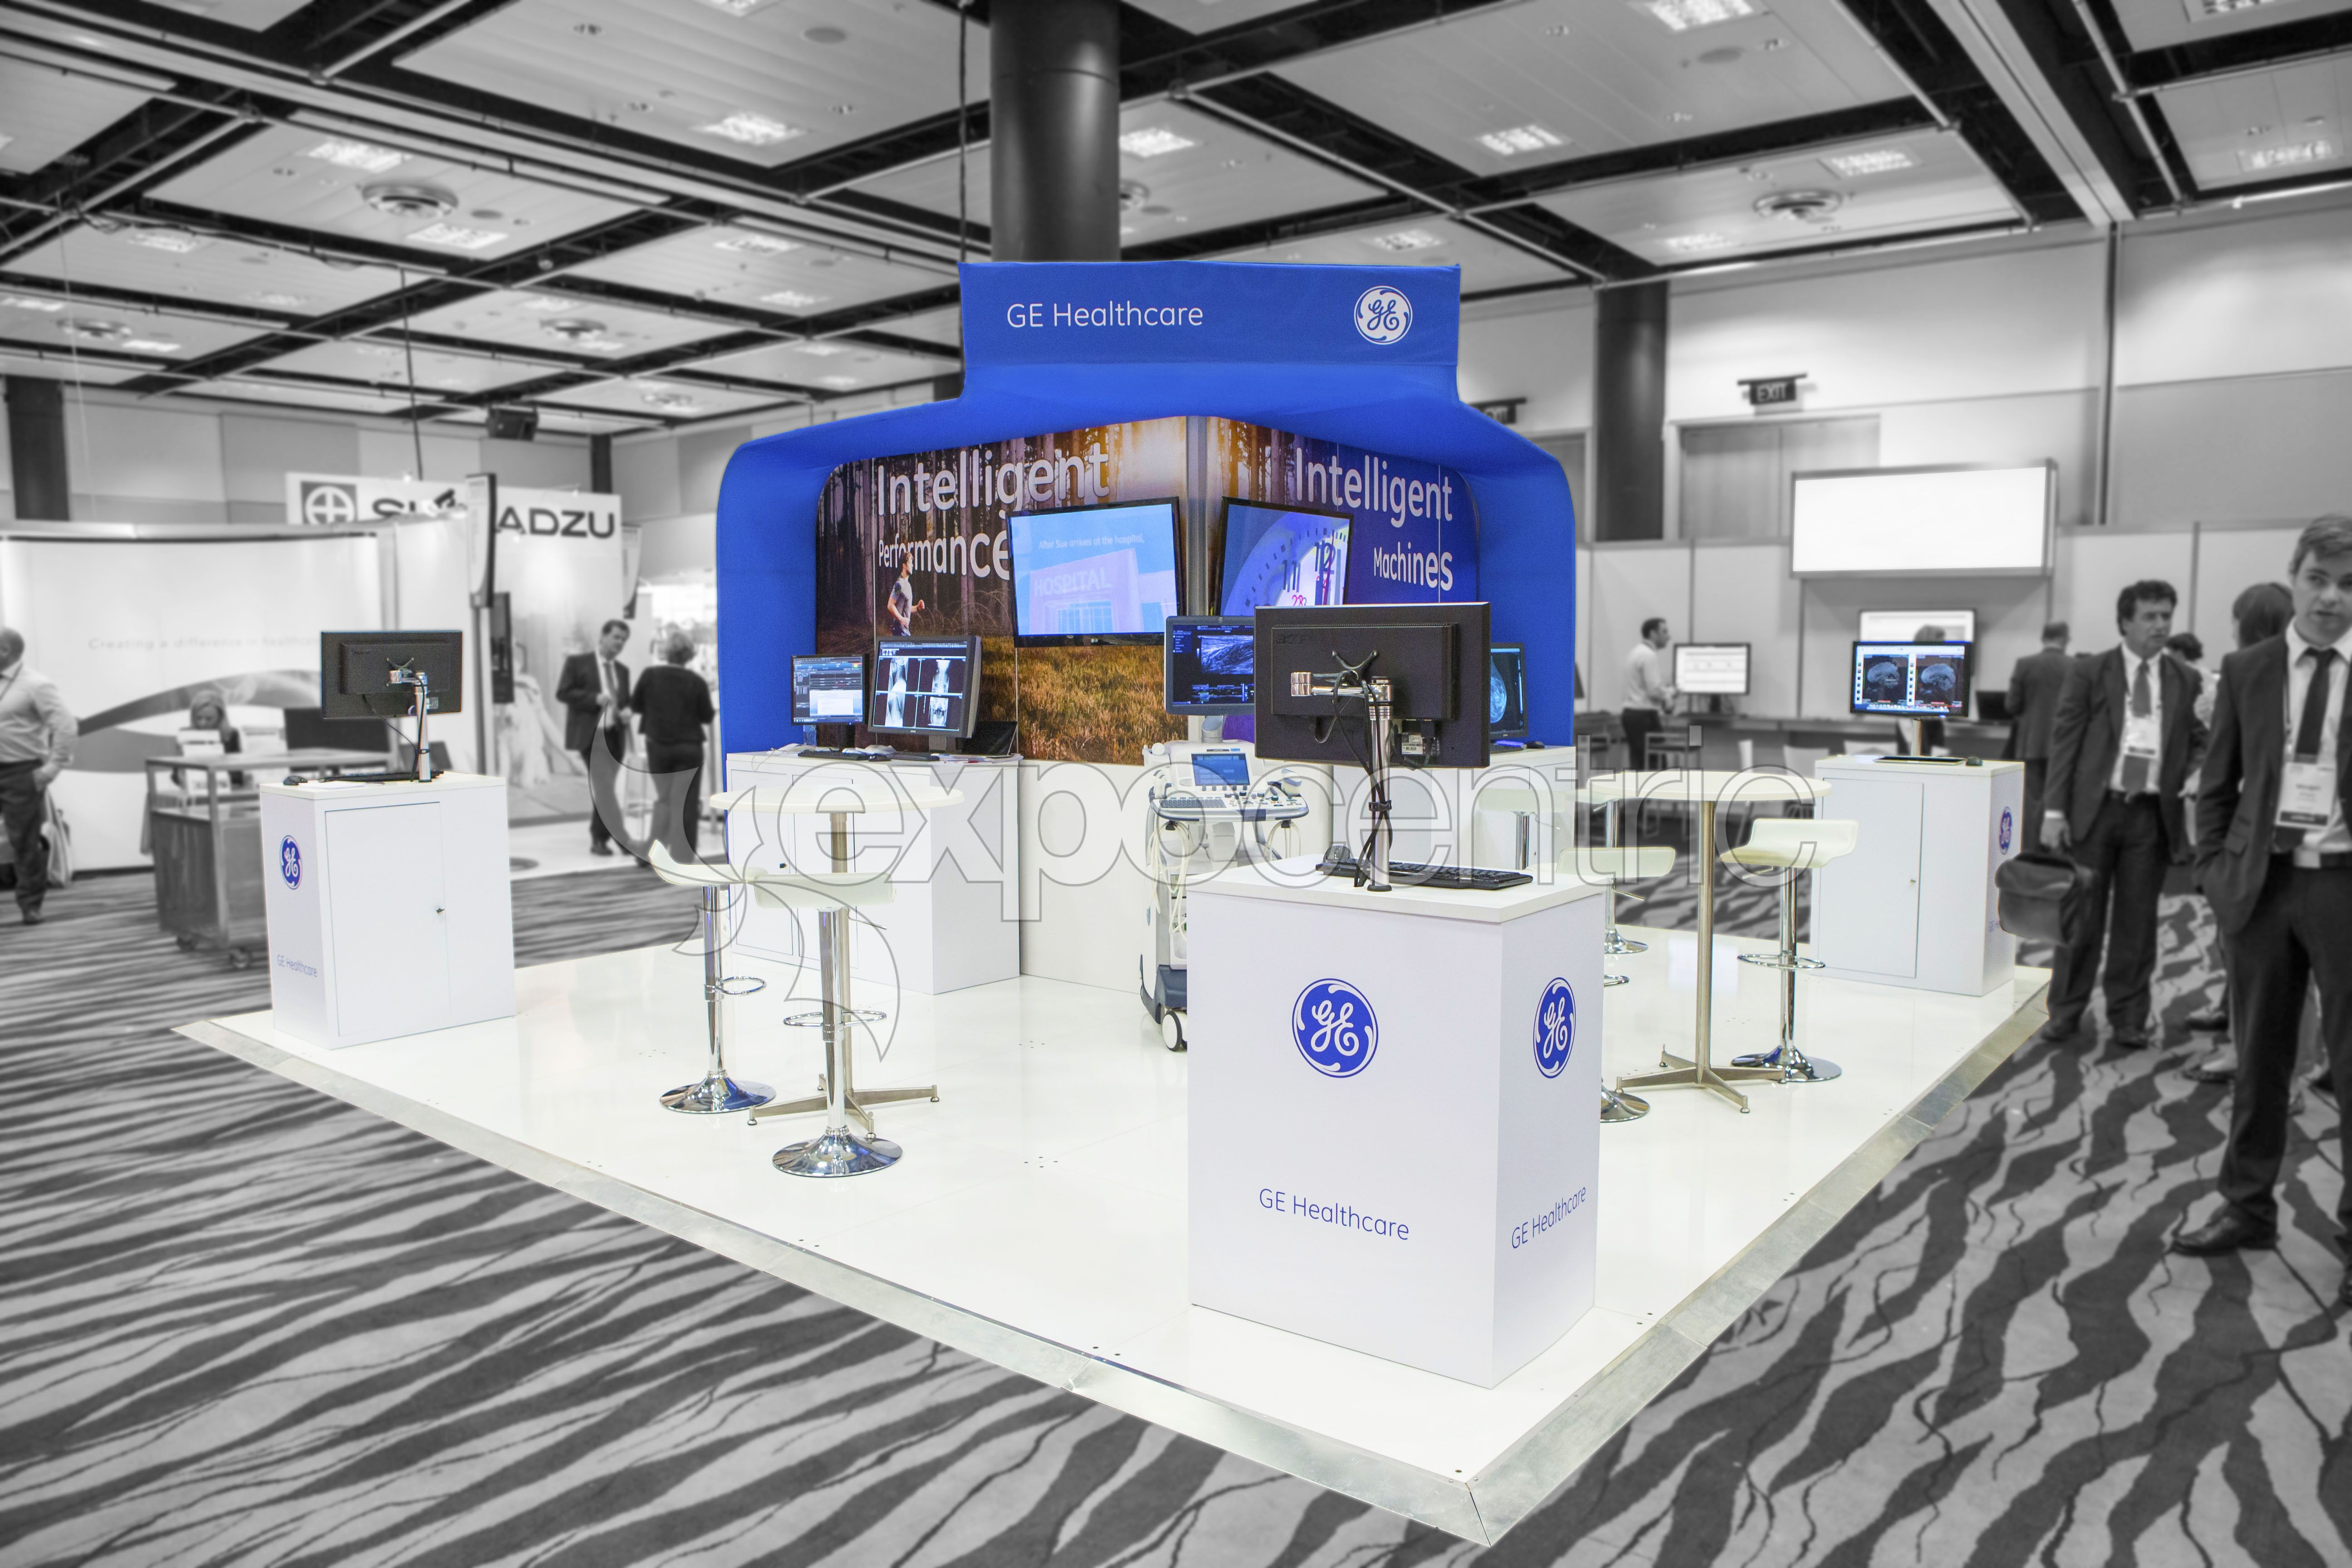 Ge Healthcare Exhibition Stand Designed And Constructed By Expocentric Expocentric Com Au Exhibition Stand Design Stand Design Exhibition Stand